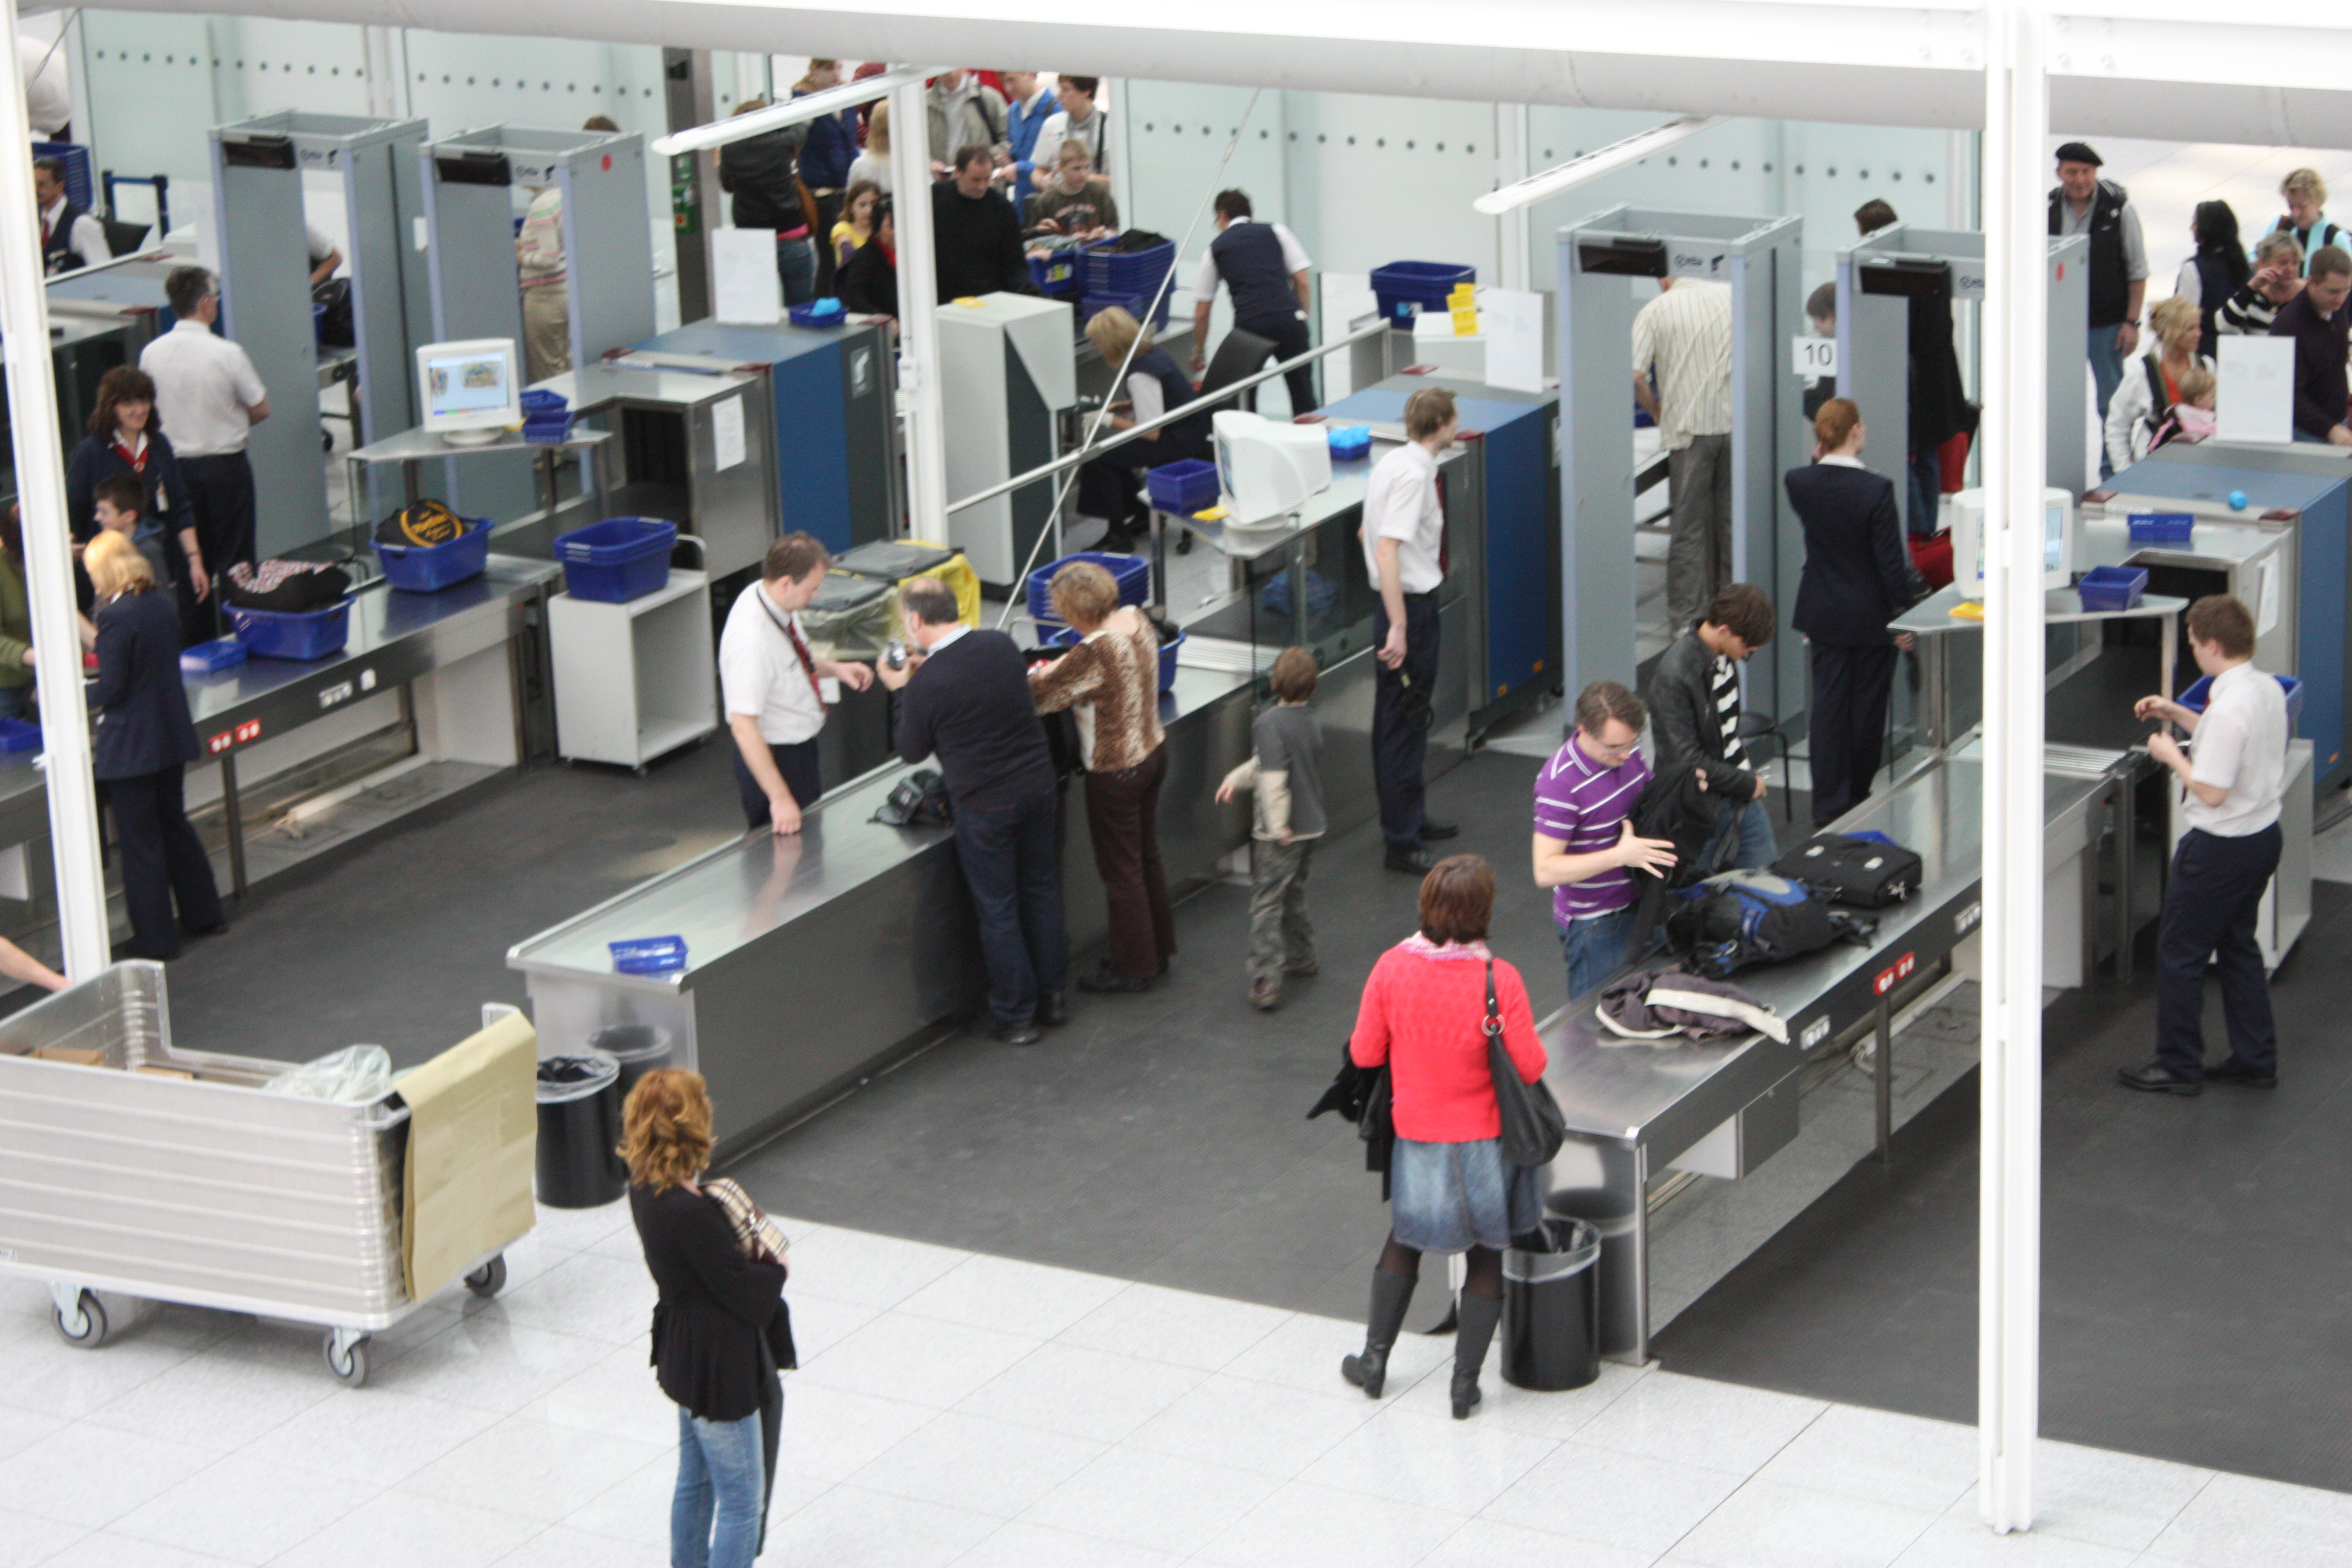 TSA Pre✓ expands to include 9 more airlines